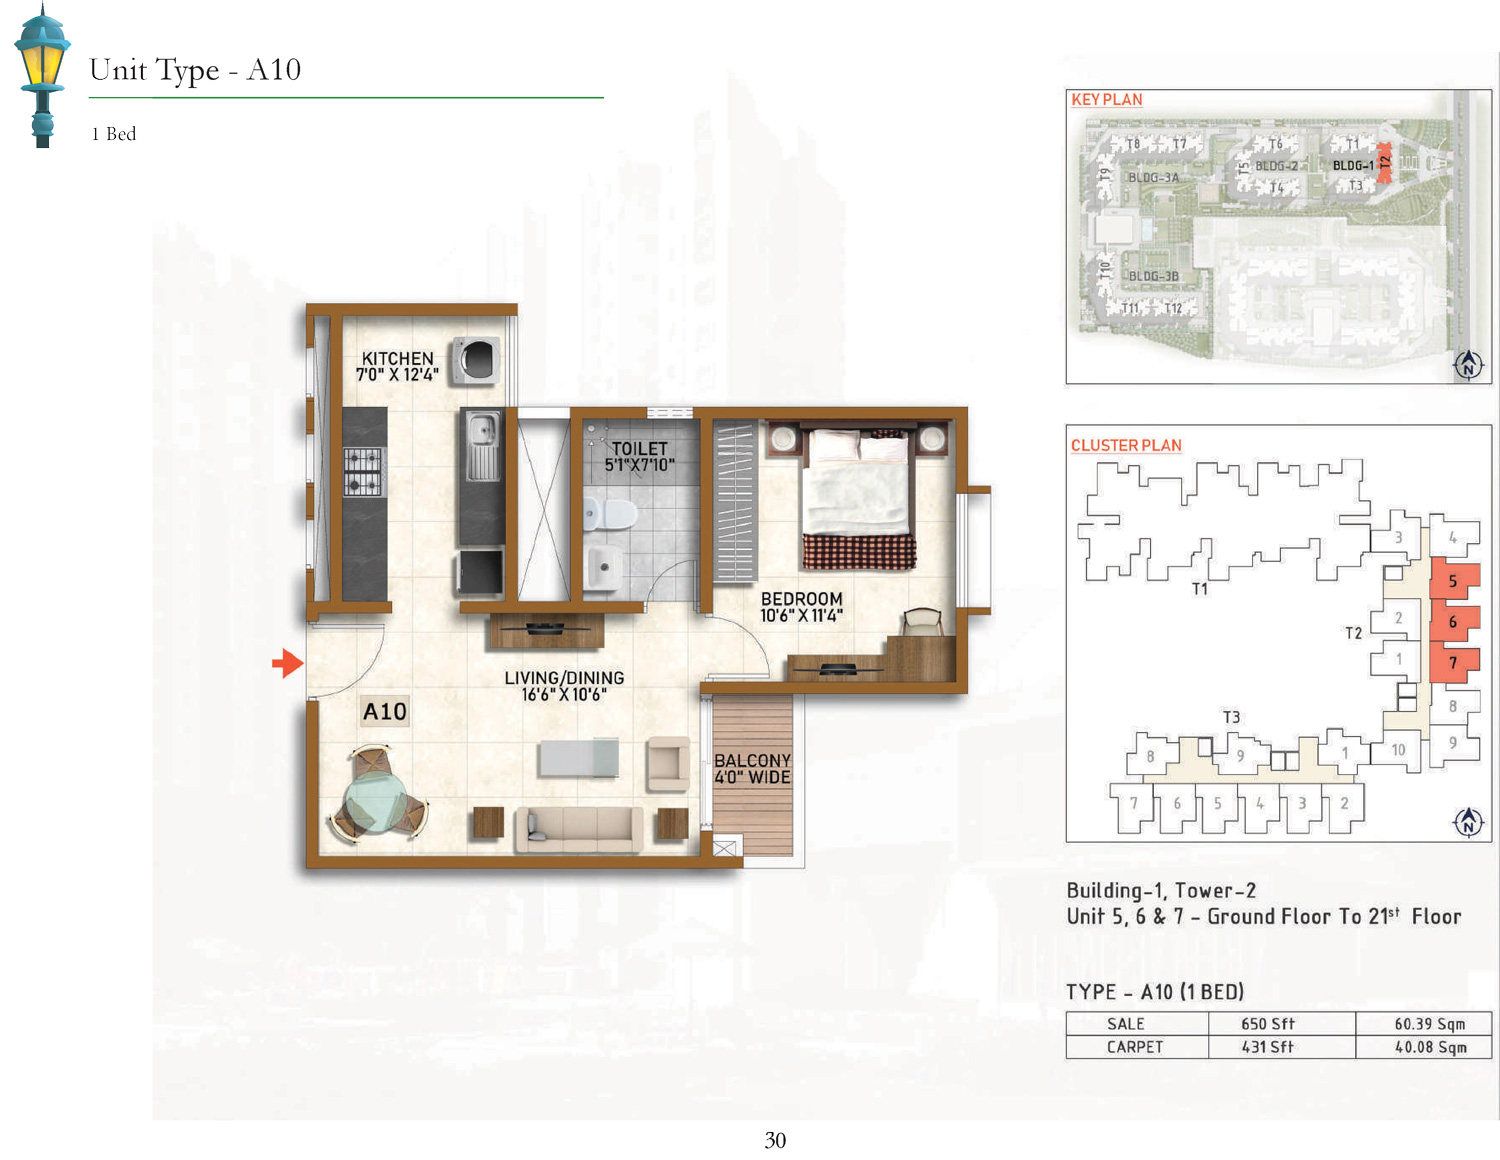 Type A10 - 650 Sq Ft